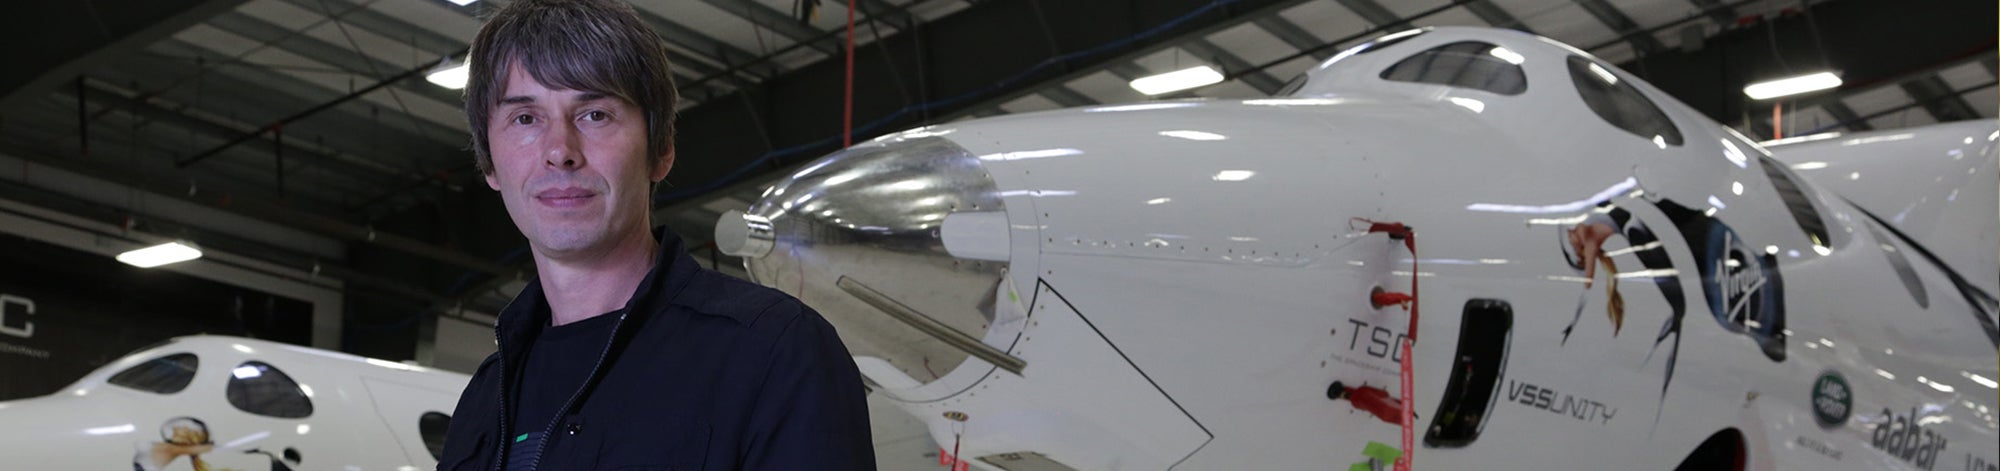 Brian Cox in front of Virgin Galactic ships